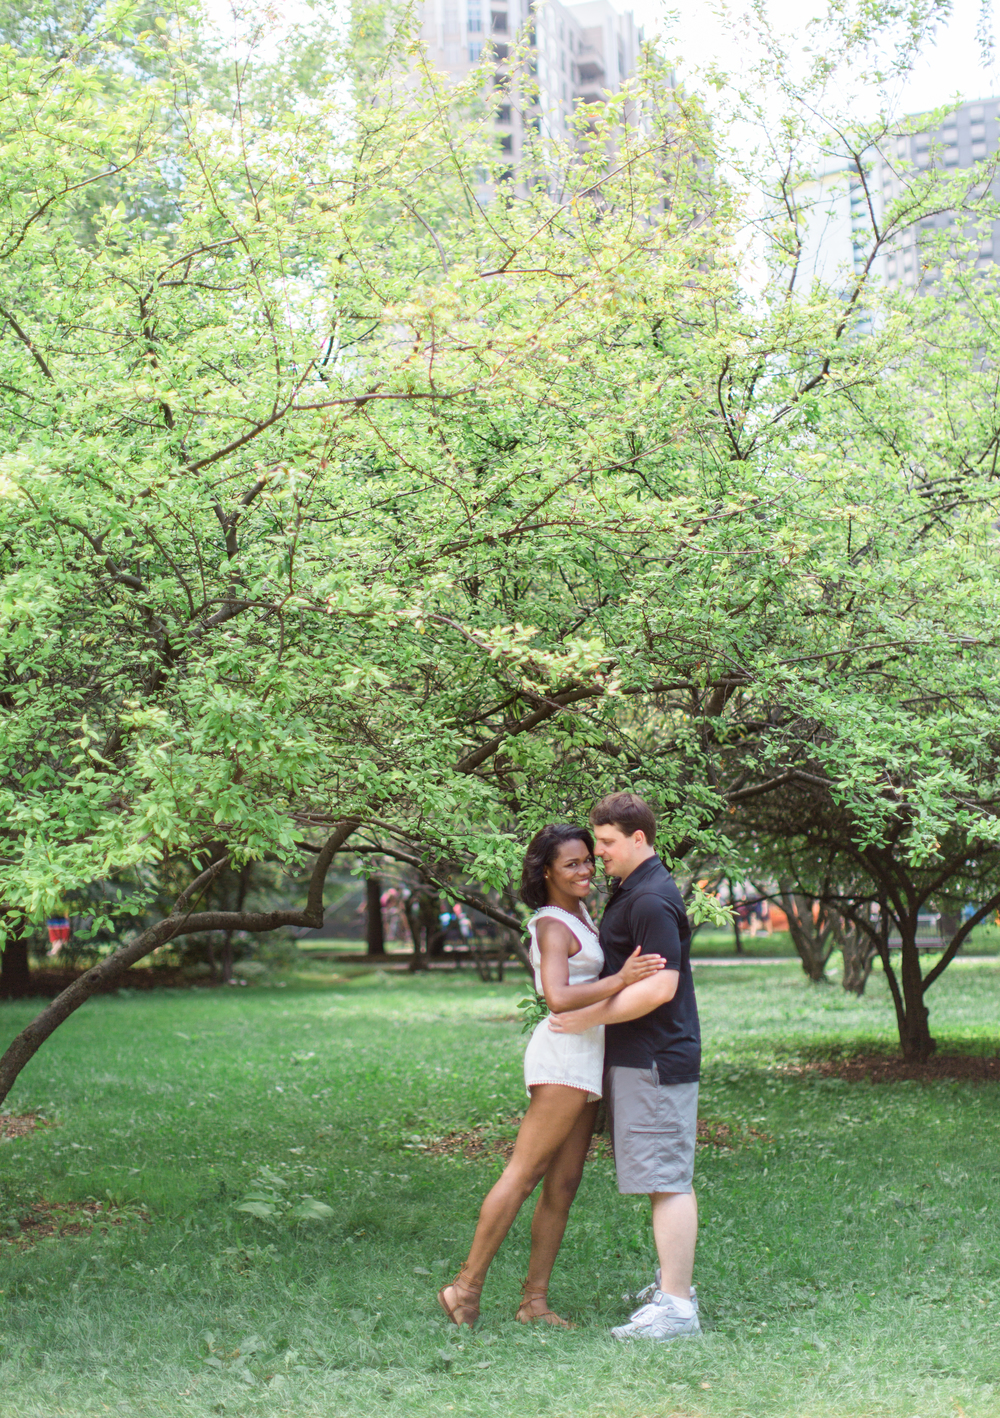 Bonphotage Chicago Engagement Session